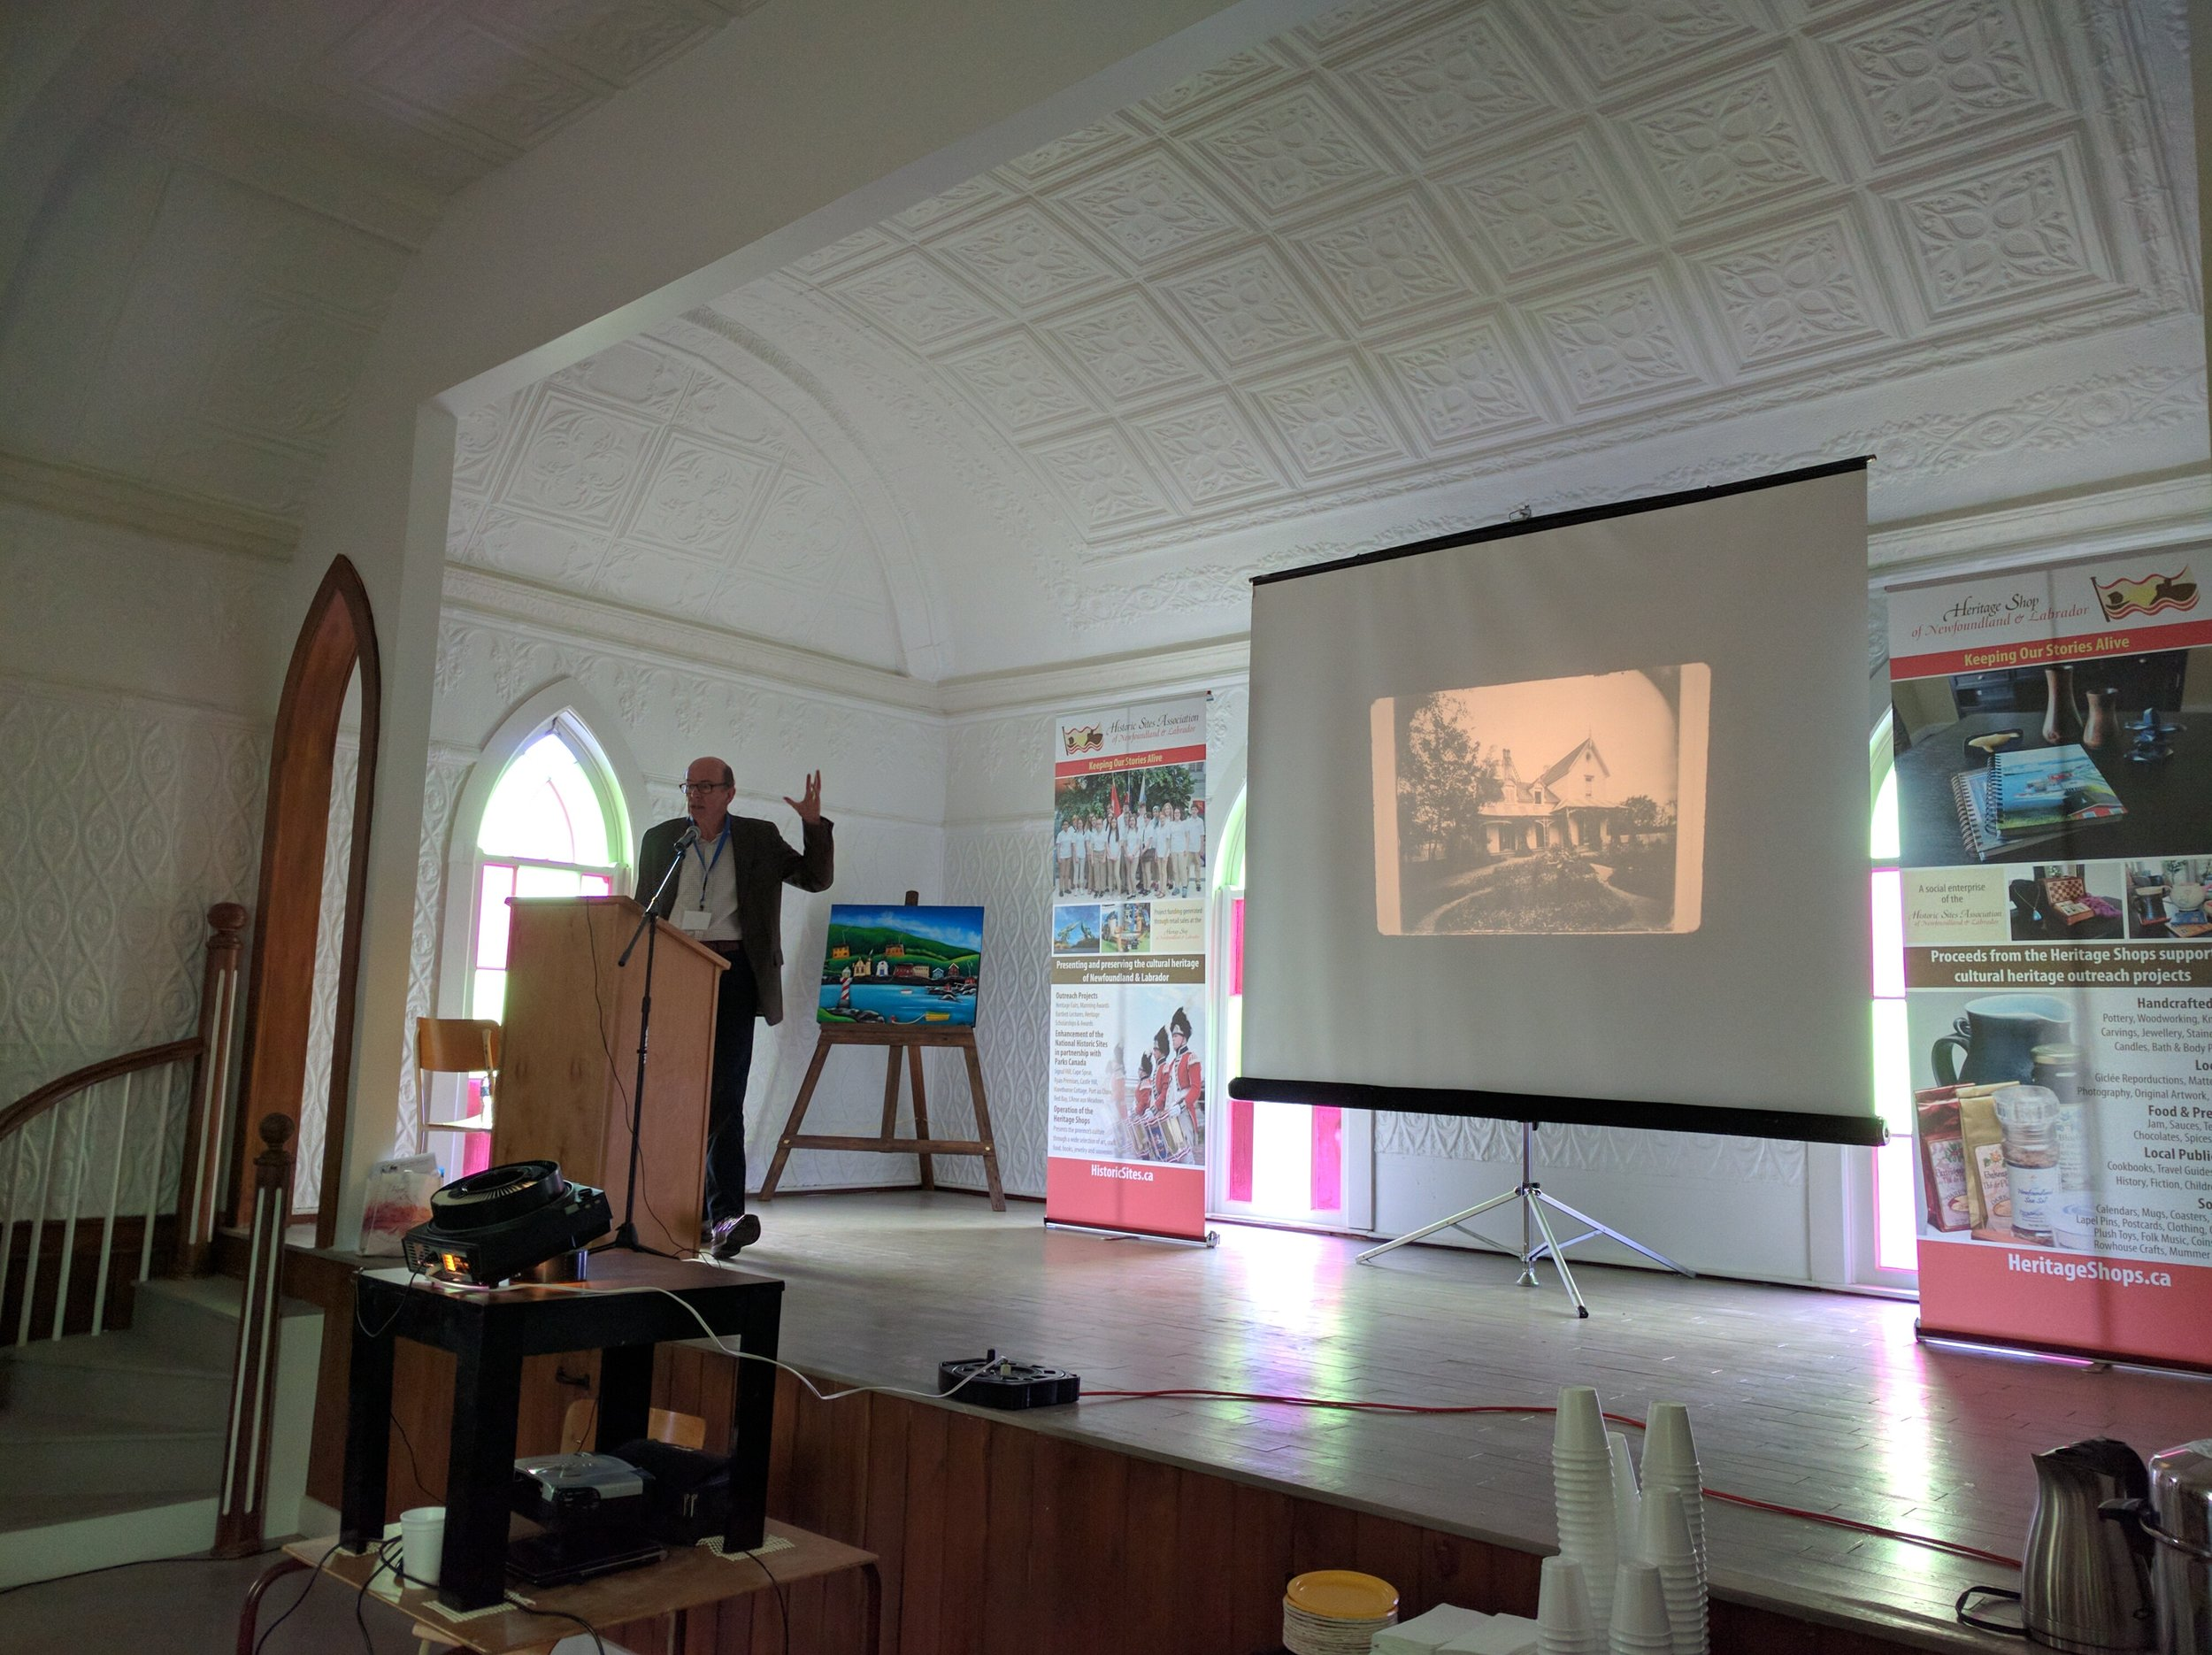 Shane O'Dea presented on the Southcott's and architecture in Heart's Content.